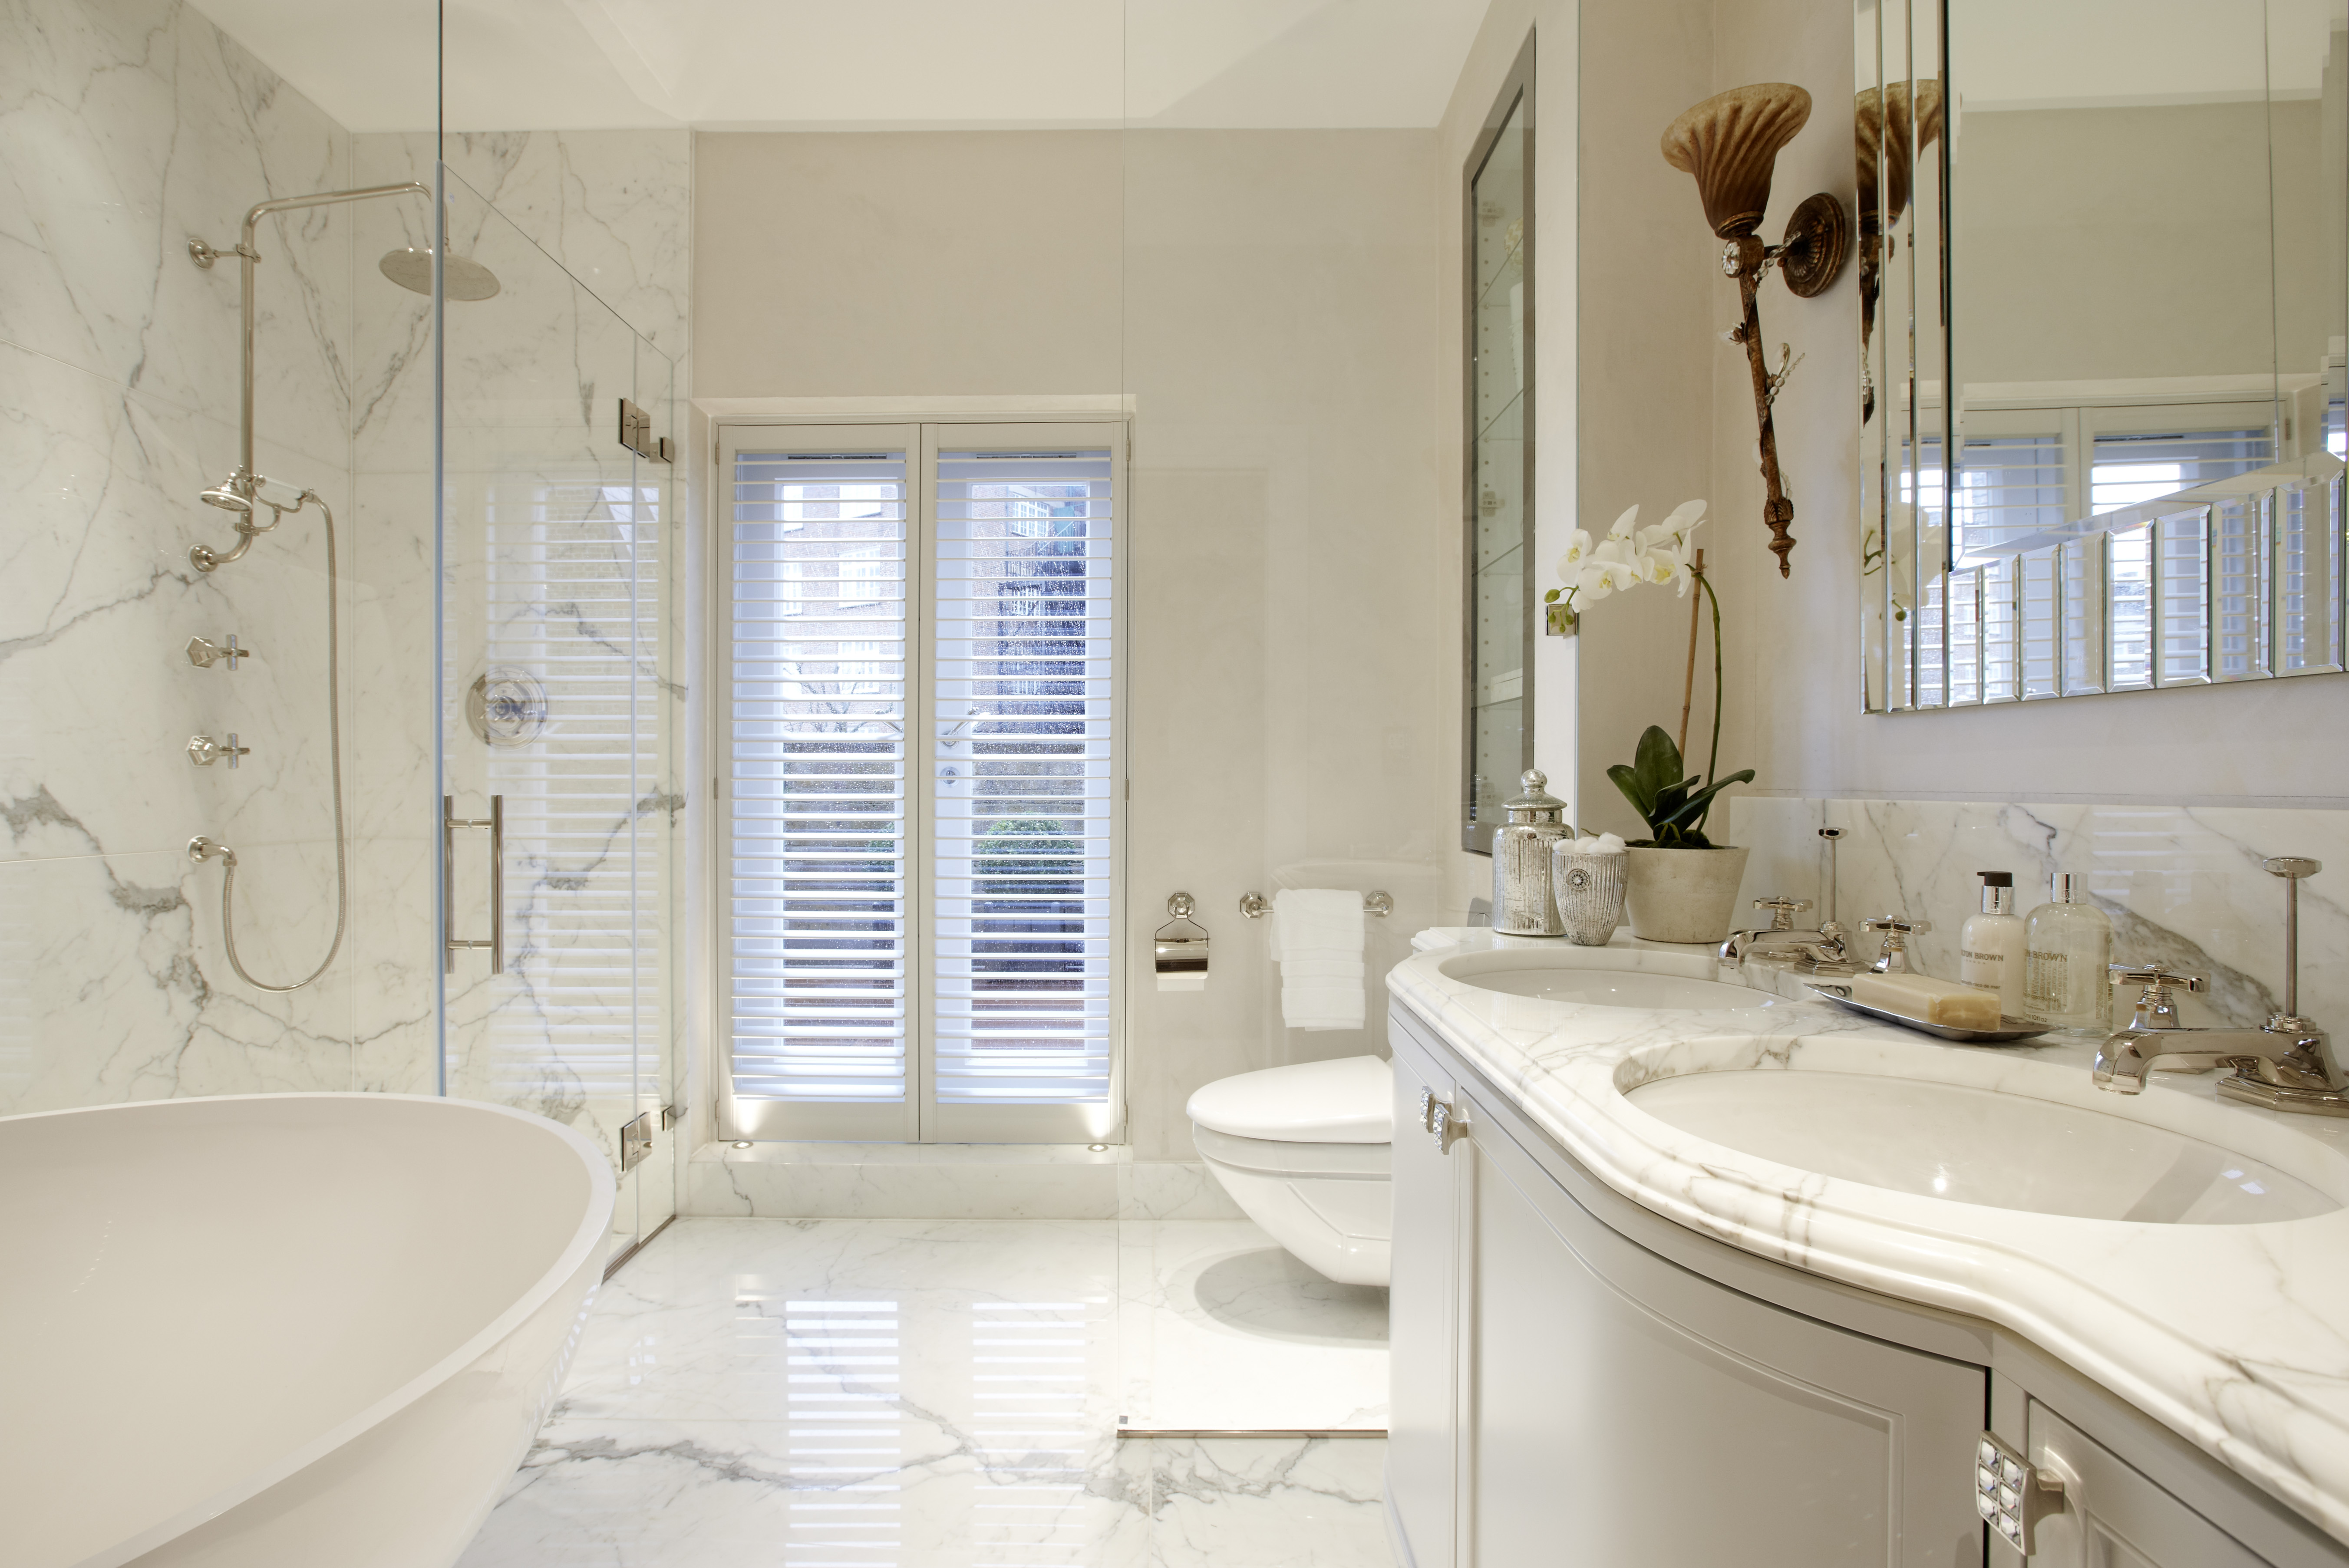 beautiful bathroom designs | Beautiful bathrooms: How to design your lighting, draw the ...